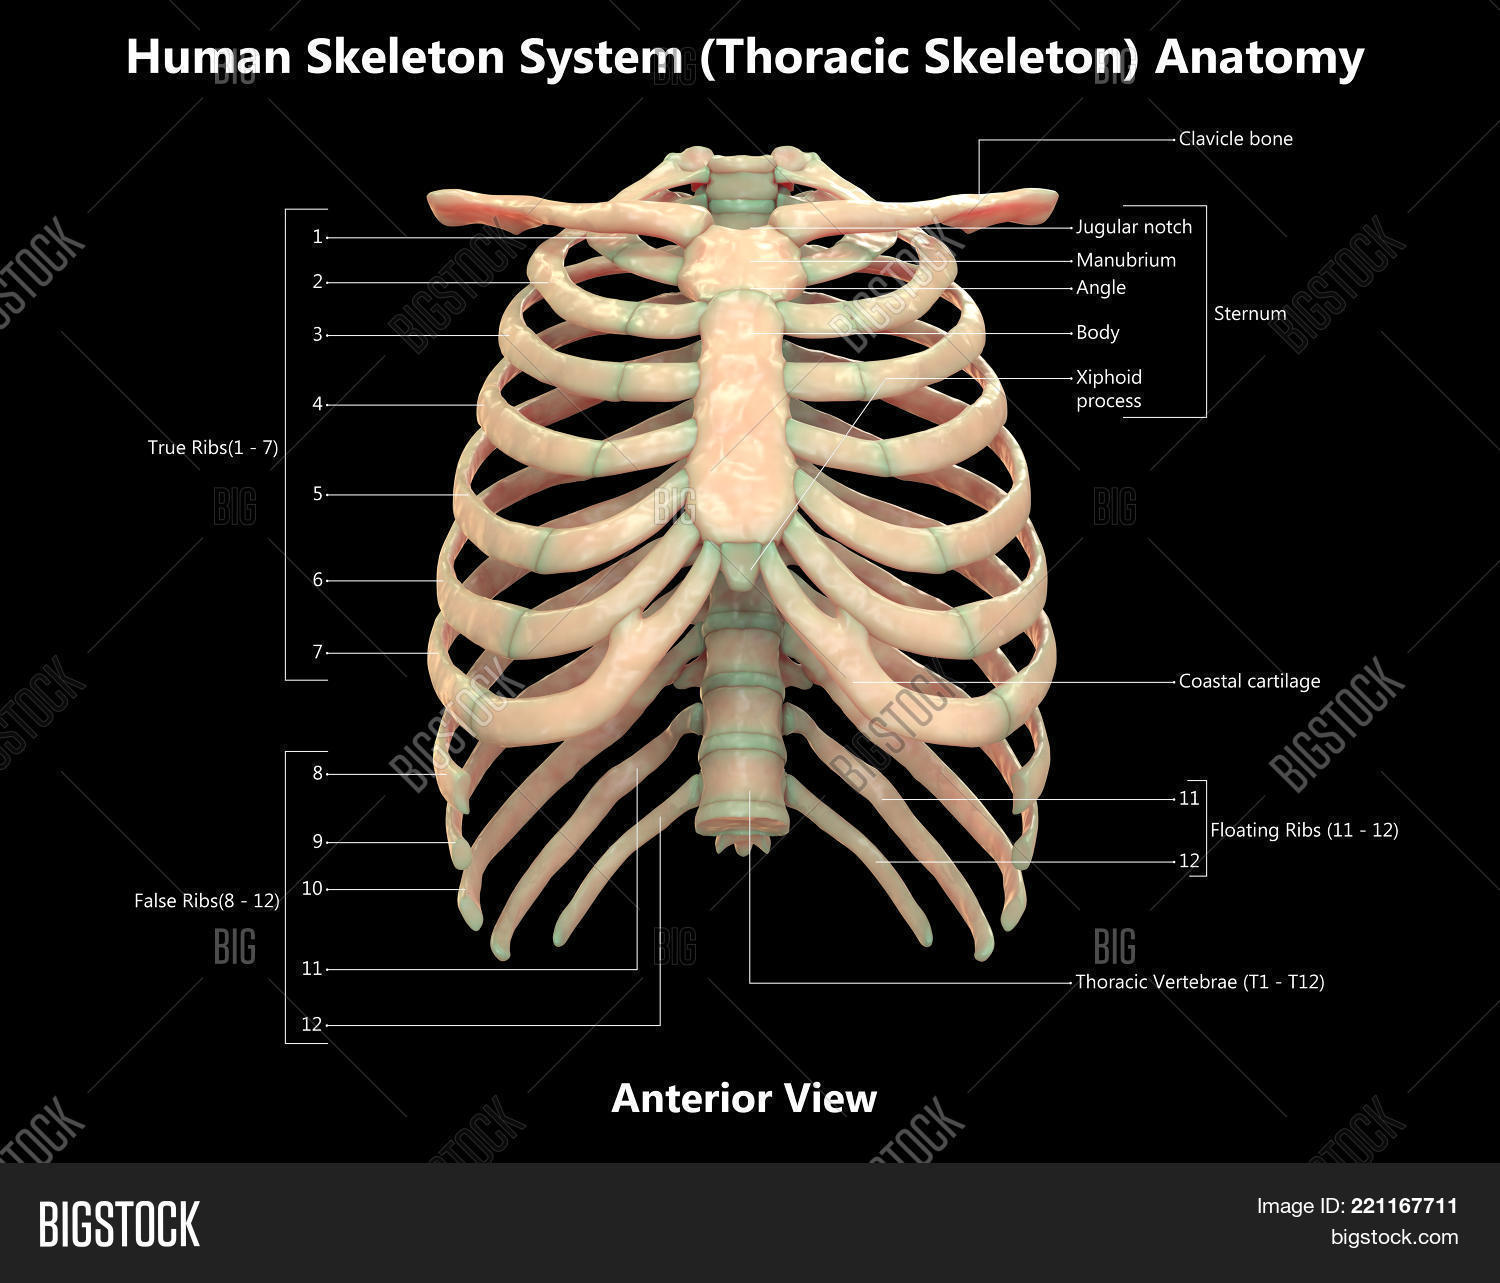 Human Skeleton System Image Photo Free Trial Bigstock